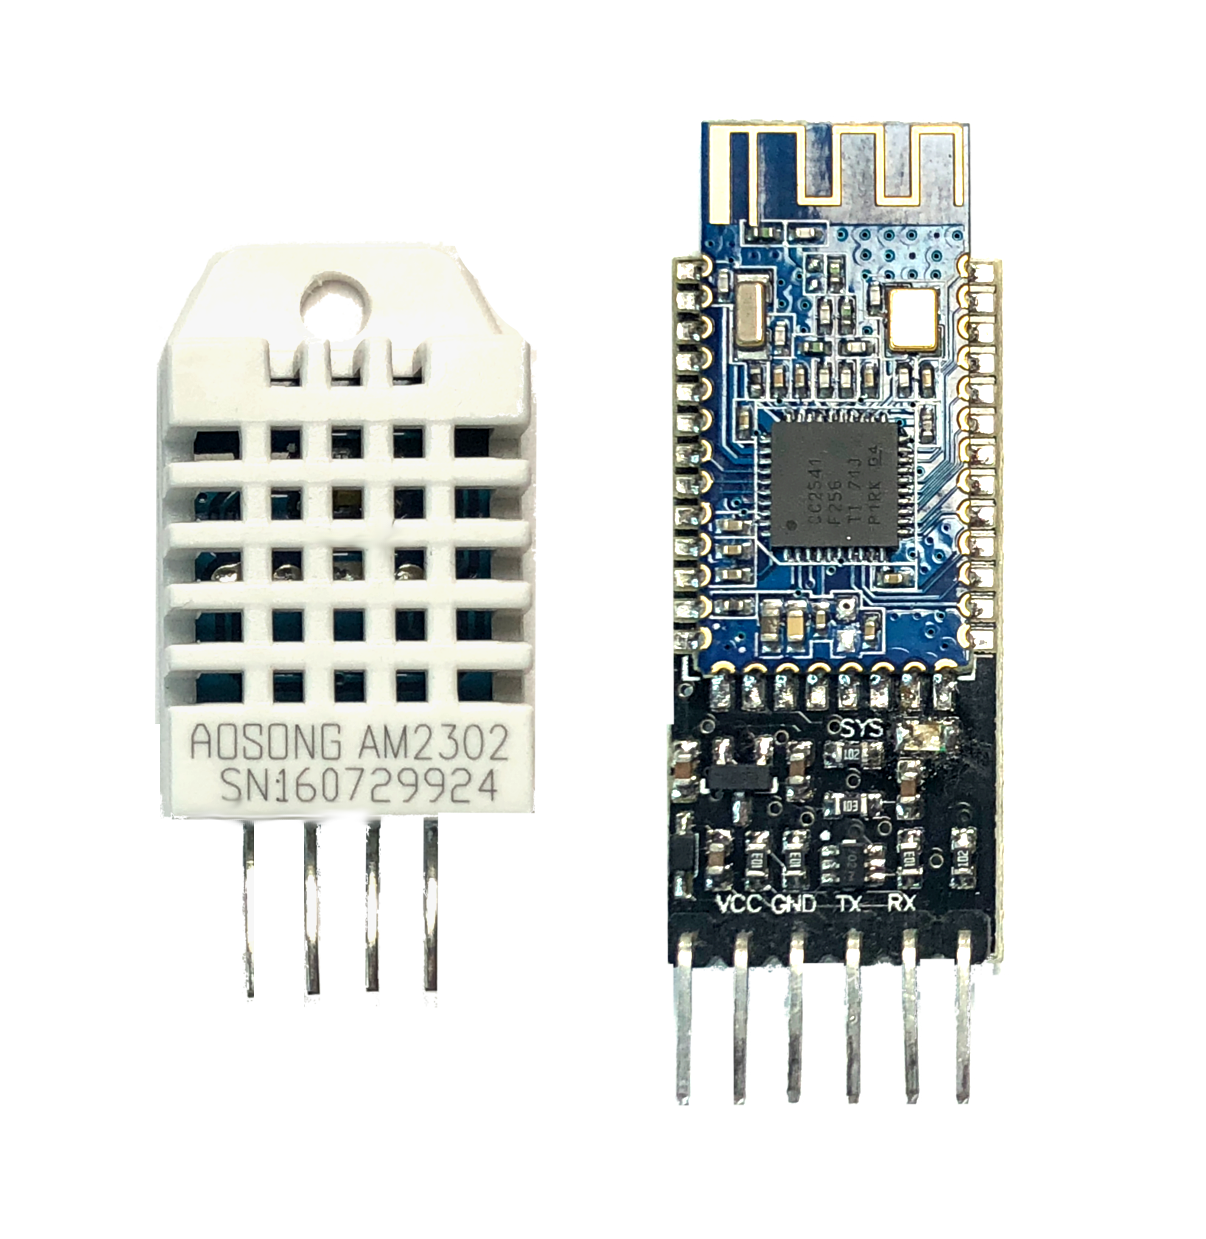 Figure 2:  DHT22 Temperature Sensor and HM-10 Bluetooth Module for